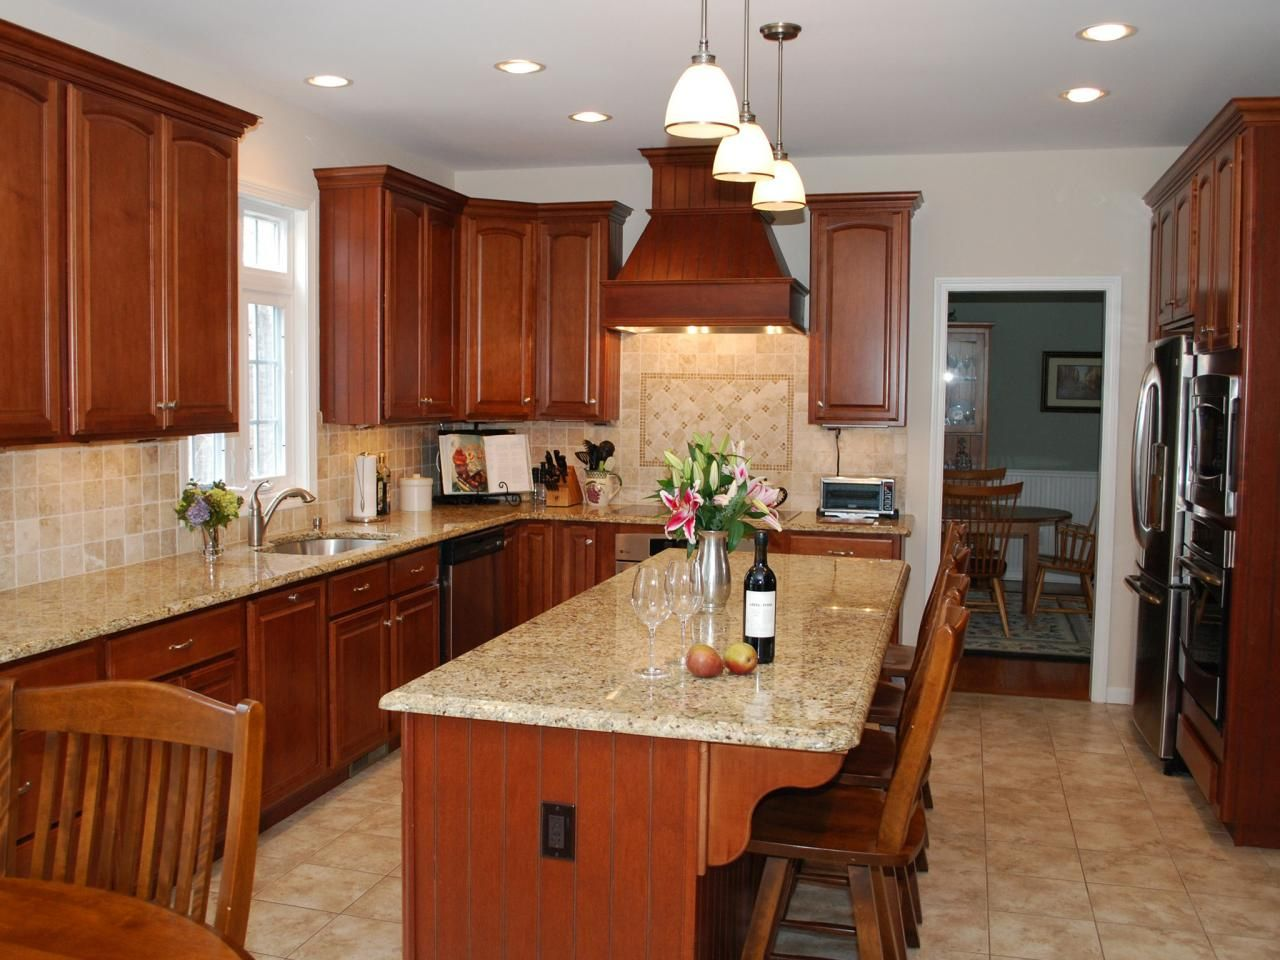 Kitchen countertop colors ideas kitchen track lighting ideas check